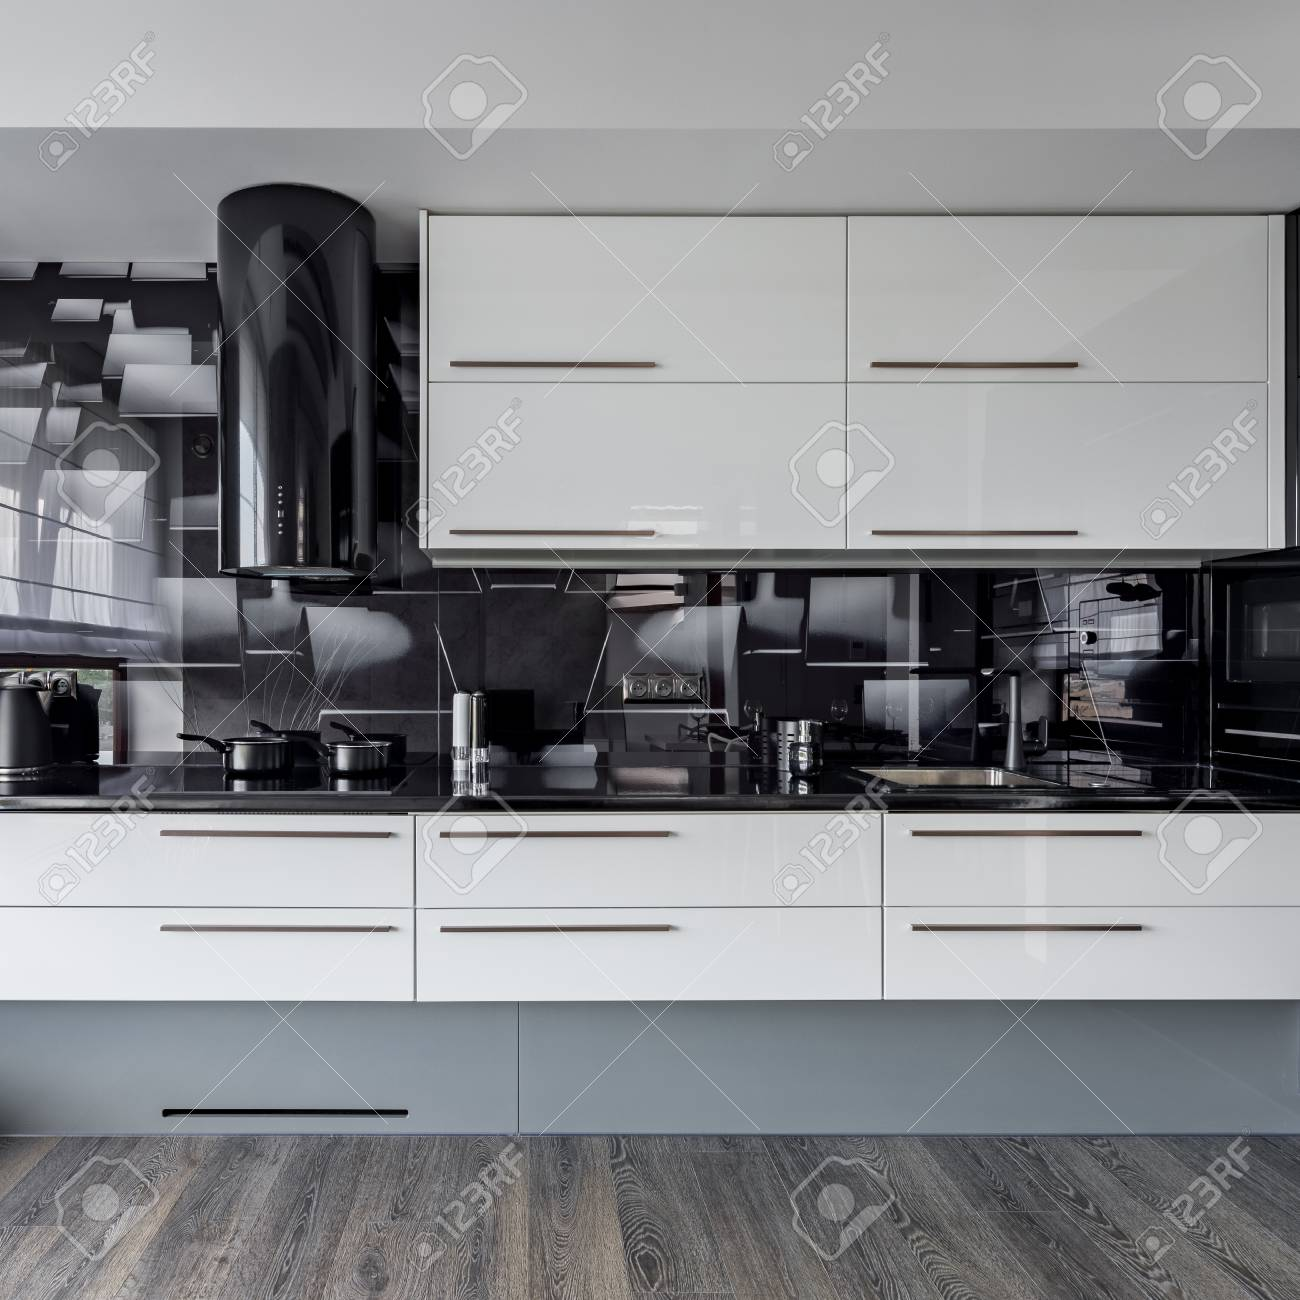 Modern Kitchen With White Cupboards And Black Wall Tiles Stock Photo Picture And Royalty Free Image Image 105231120